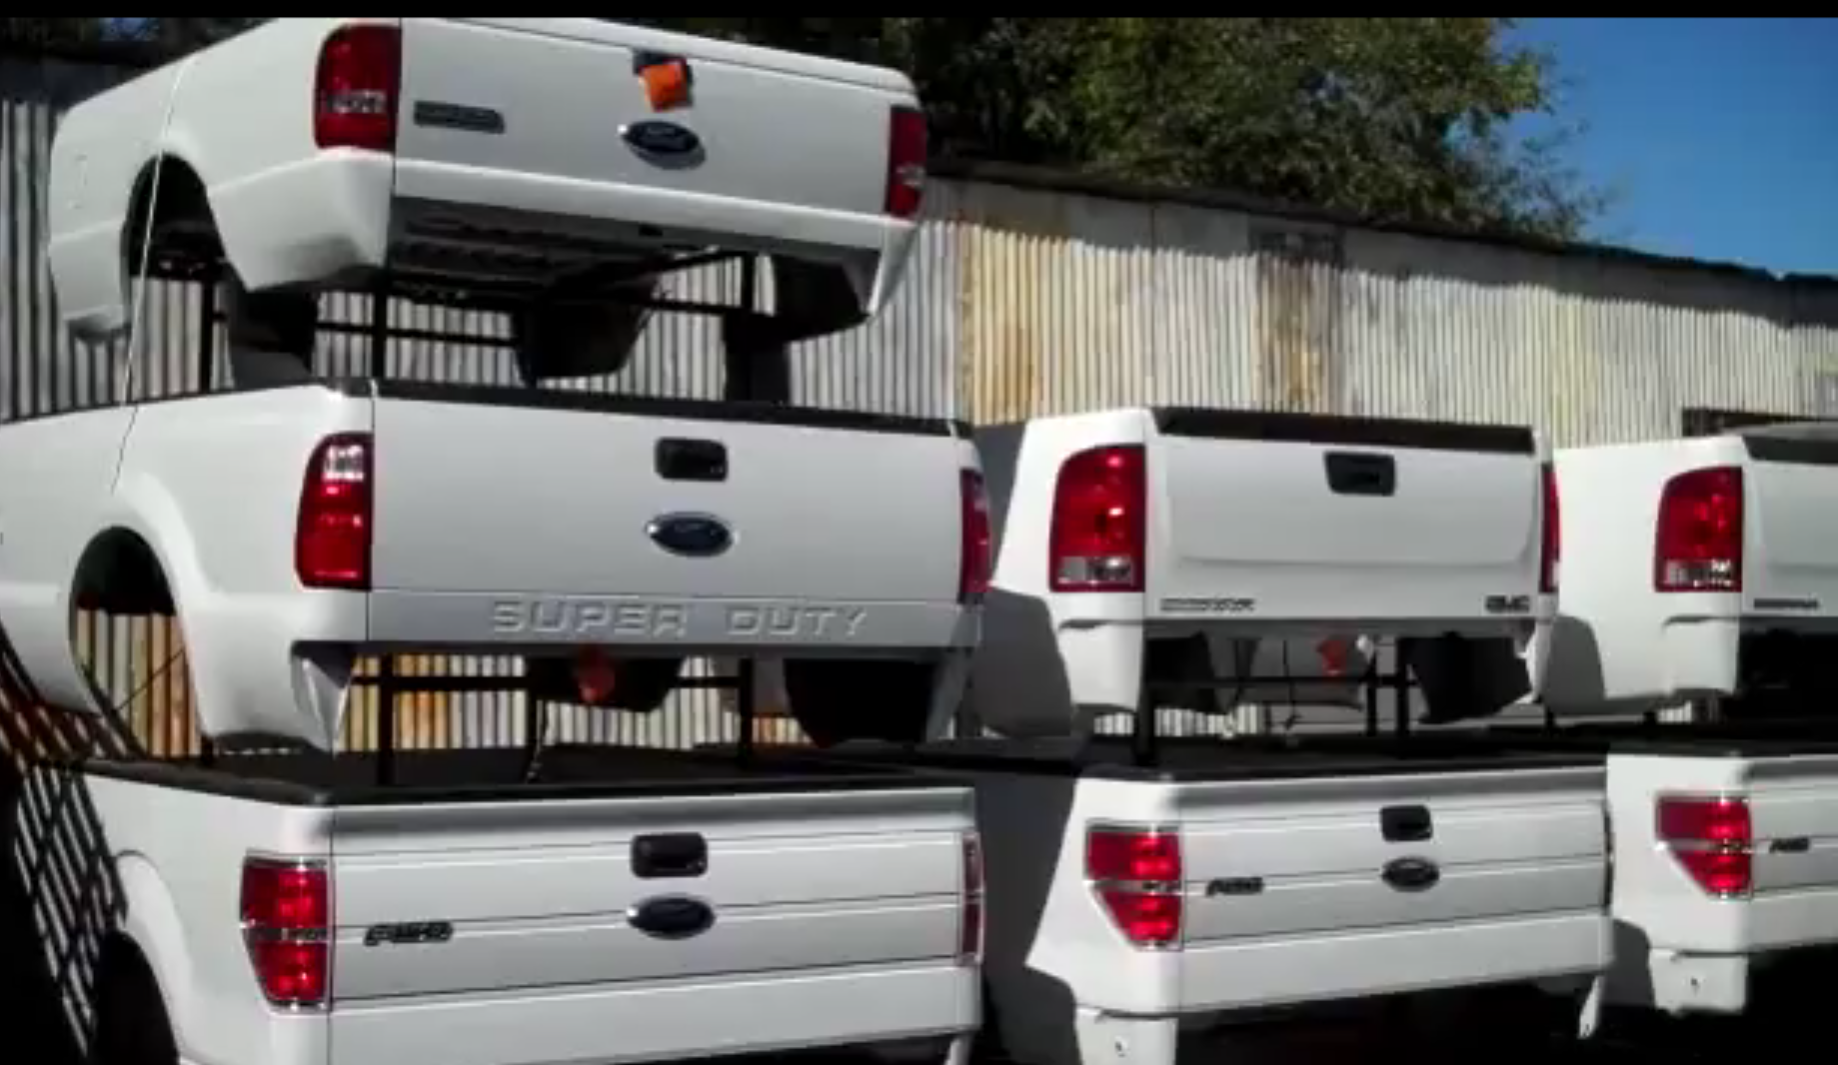 Truck Beds For Sale >> Pickup Truck Beds Tailgates Used Takeoff Sacramento